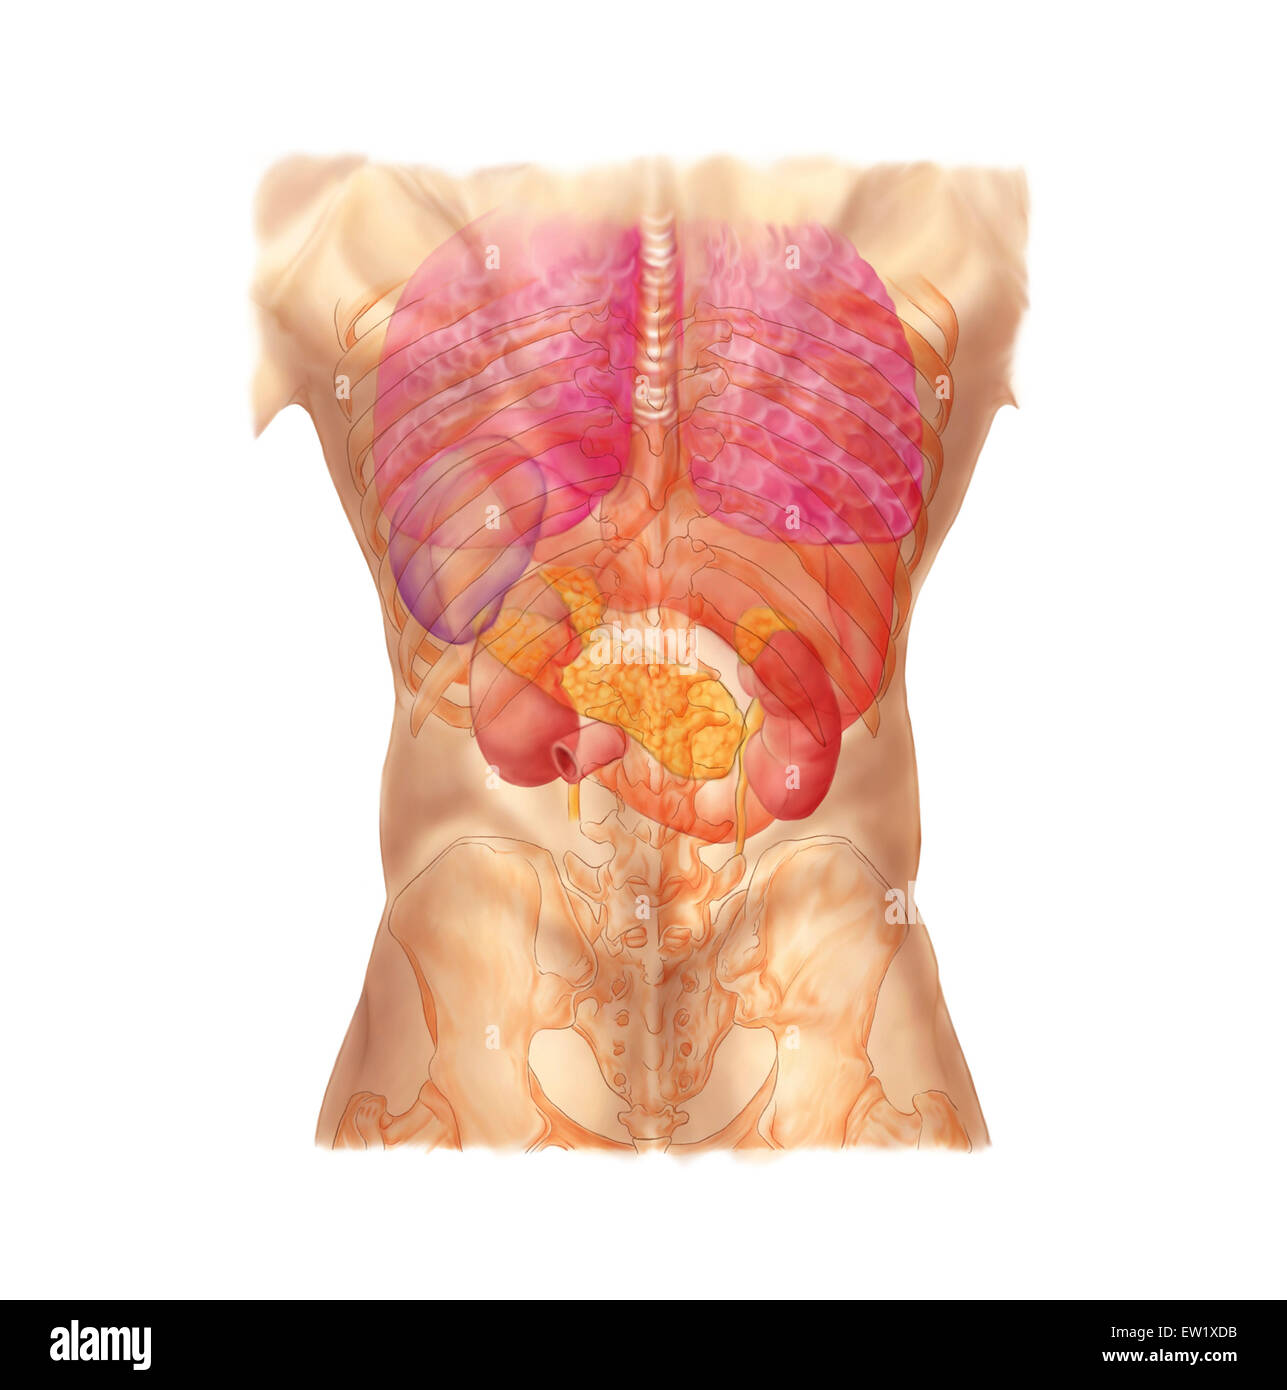 diagram of ribs and organs headphones wiring abdominal quadrants posterior view with internal rib cage